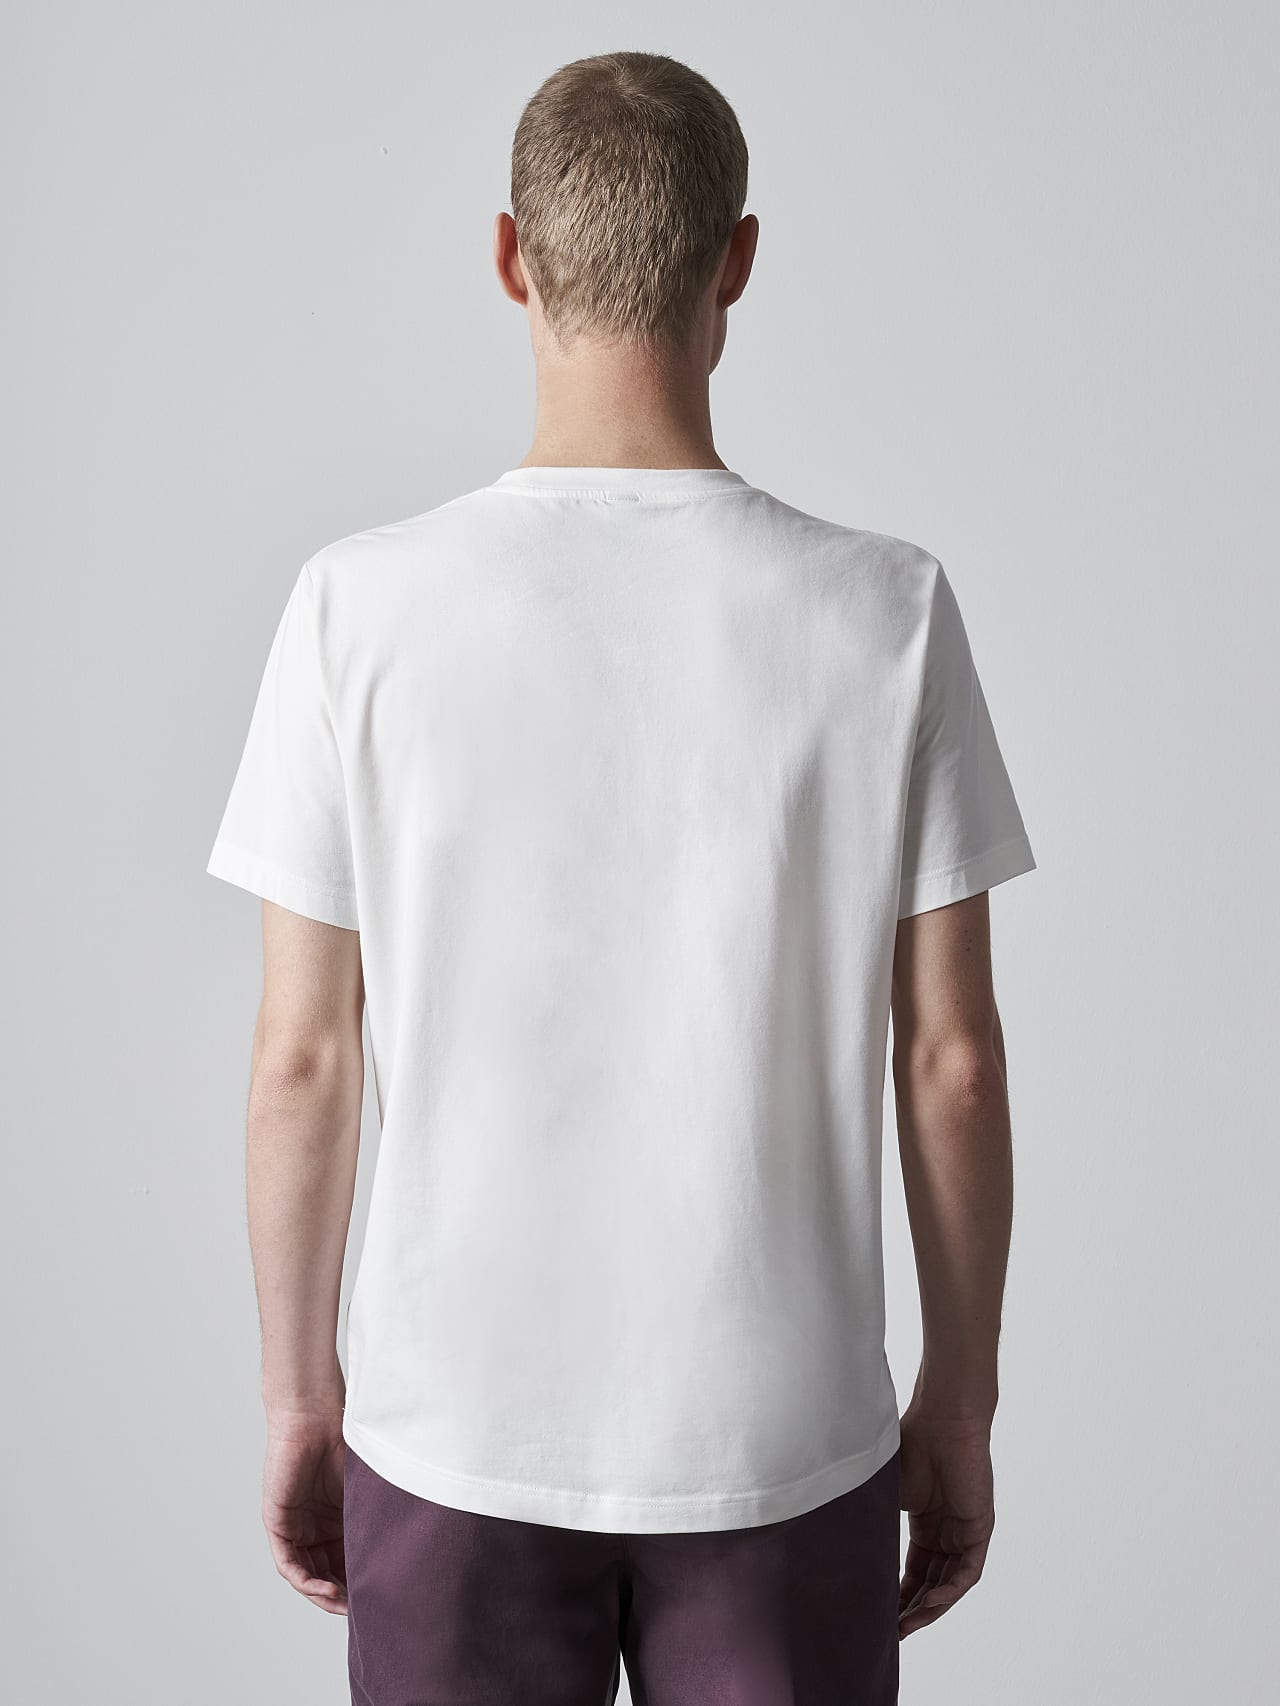 JANOS V3.Y5.02 Logo Embroidery T-Shirt offwhite Front Main Alpha Tauri